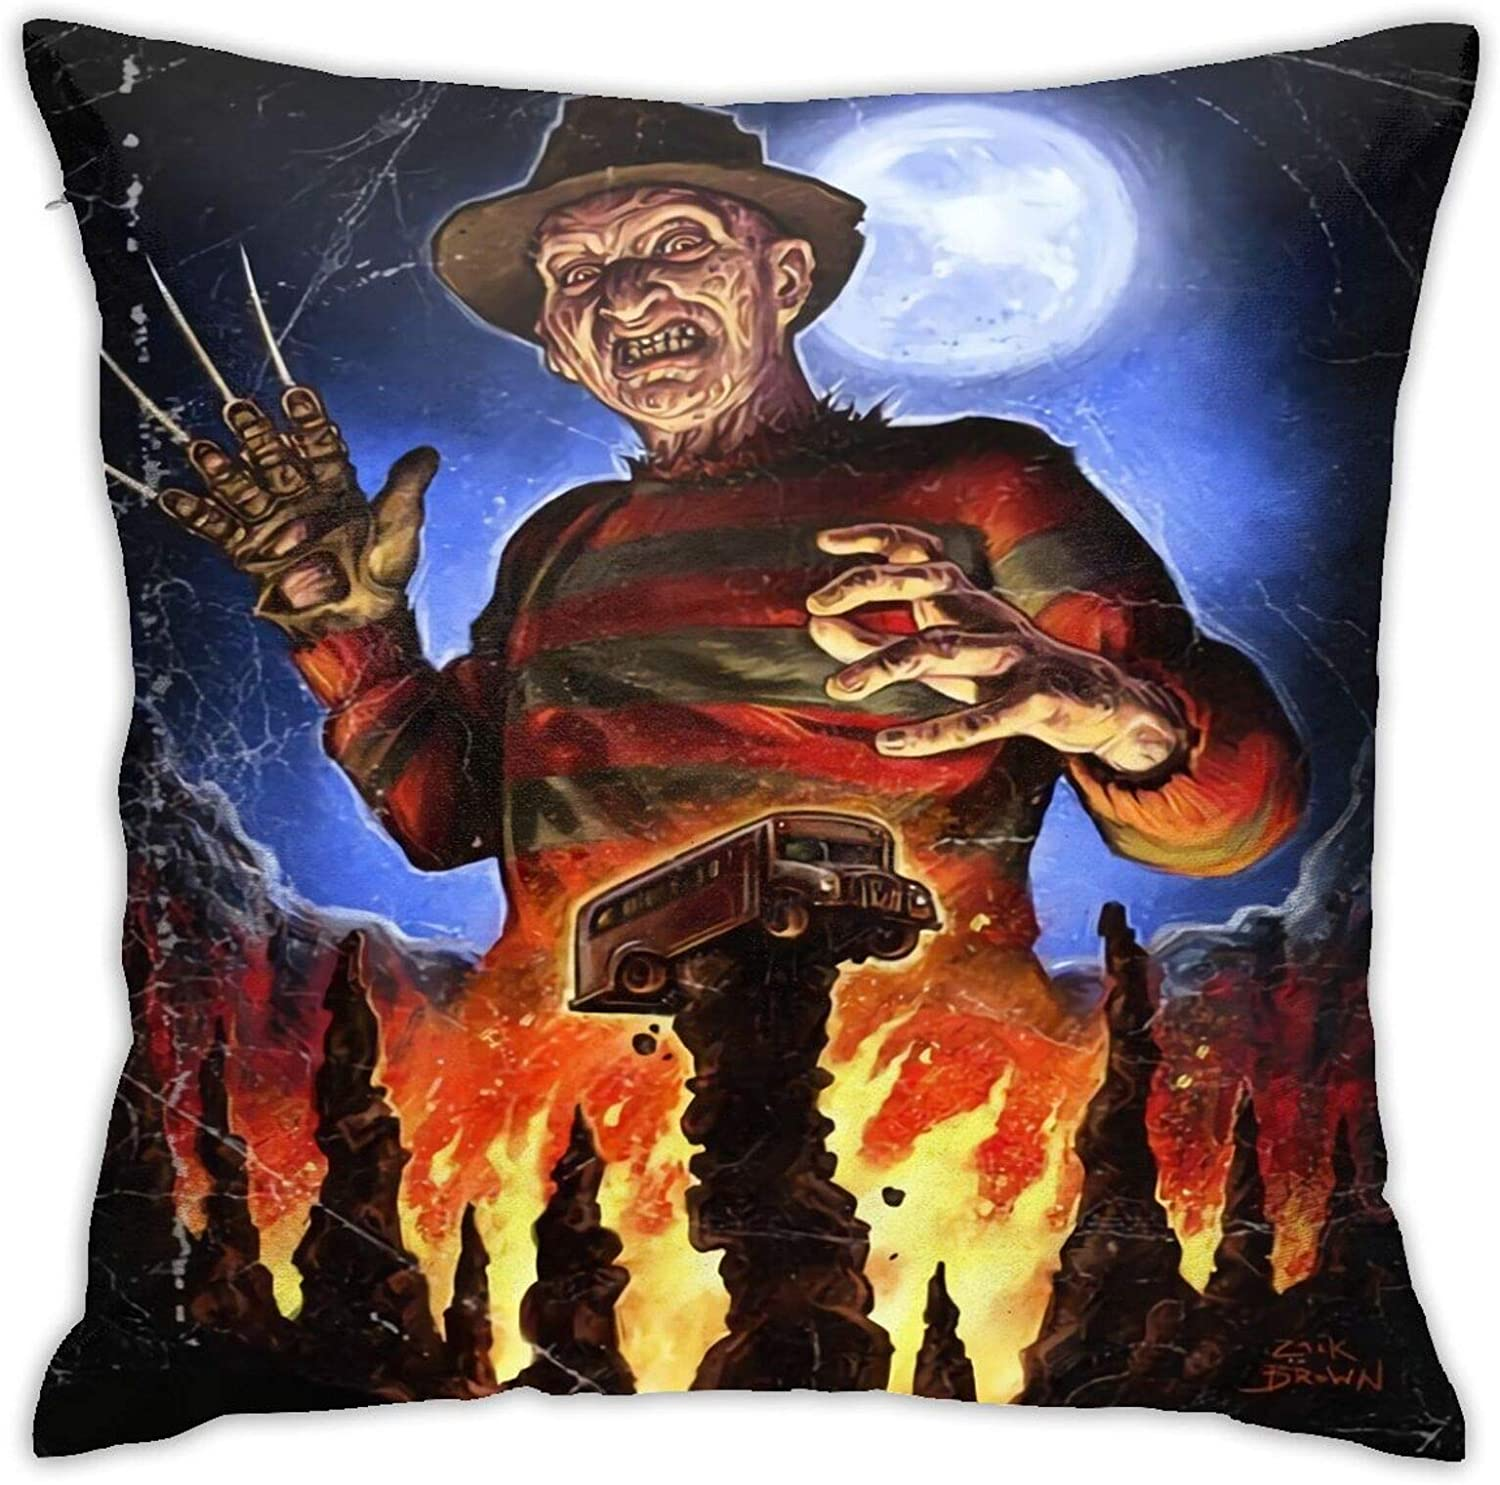 Nightmare On Elm Street Comfortable Pillowcase with Patterns On Both Sides Pillowcases 18inch 18inch Excluding Pillow Core